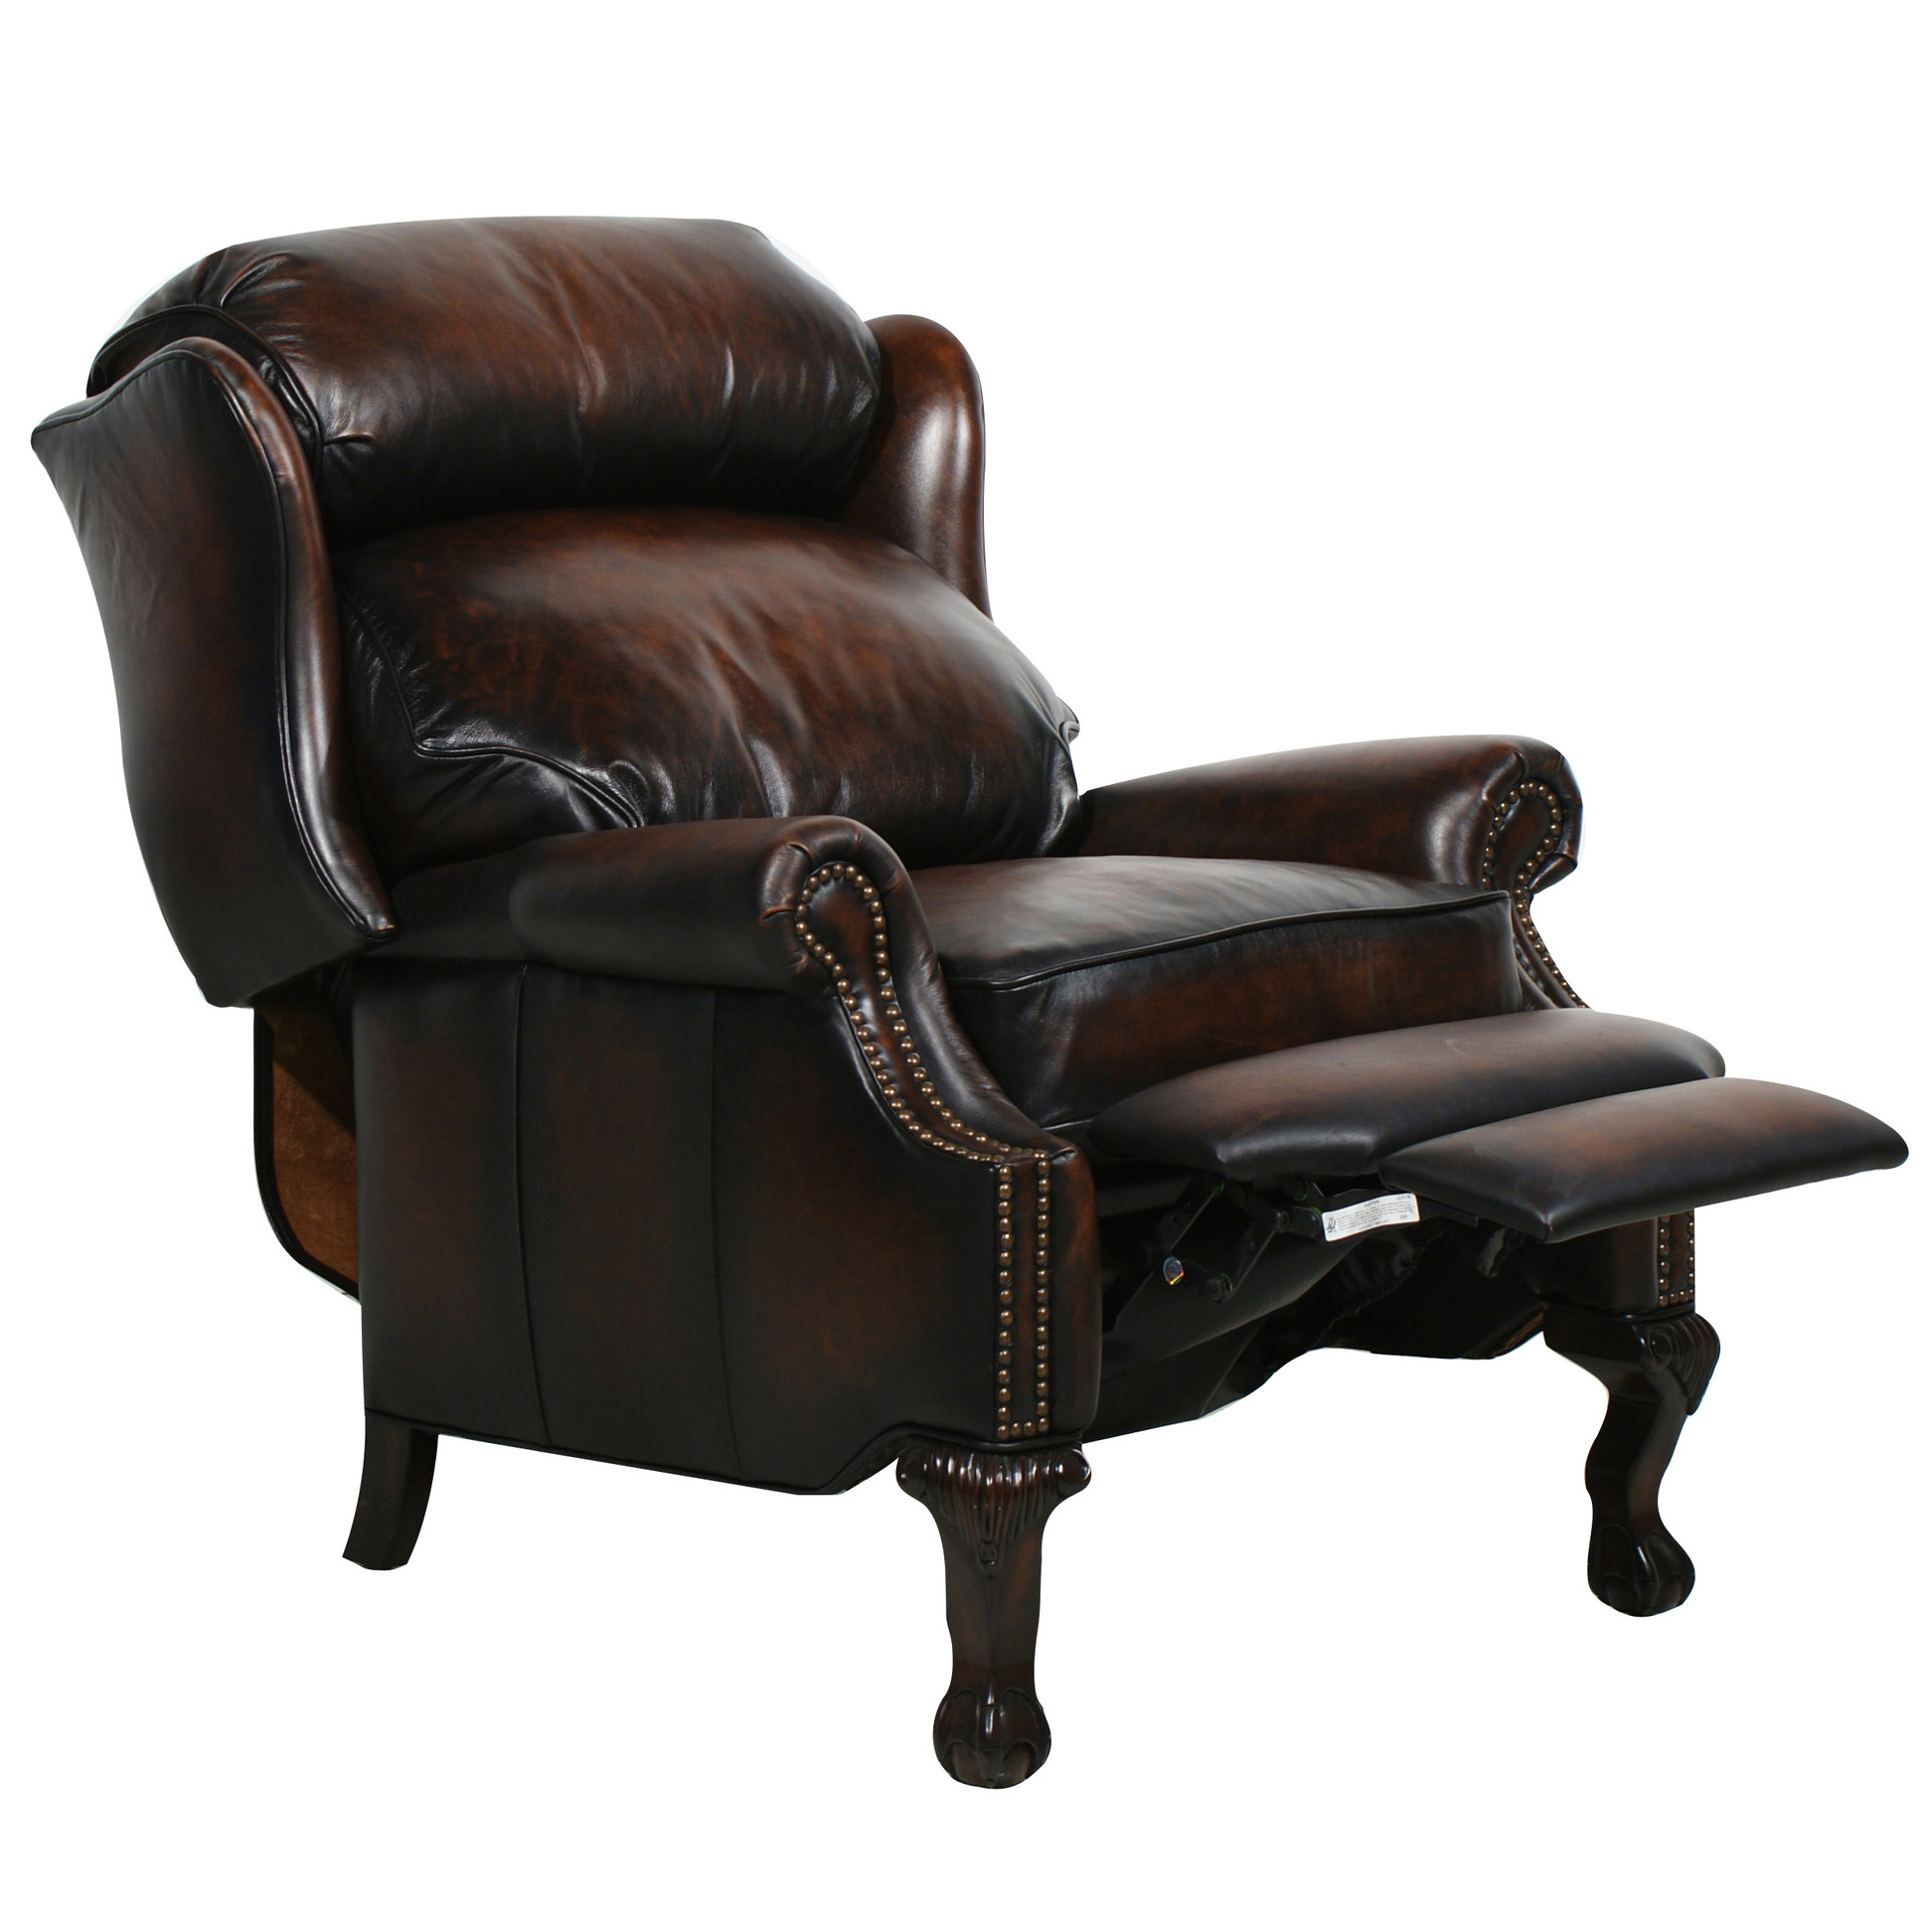 Reclining Lounge Chair Barcalounger Danbury Ii Recliner Chair Leather Recliner